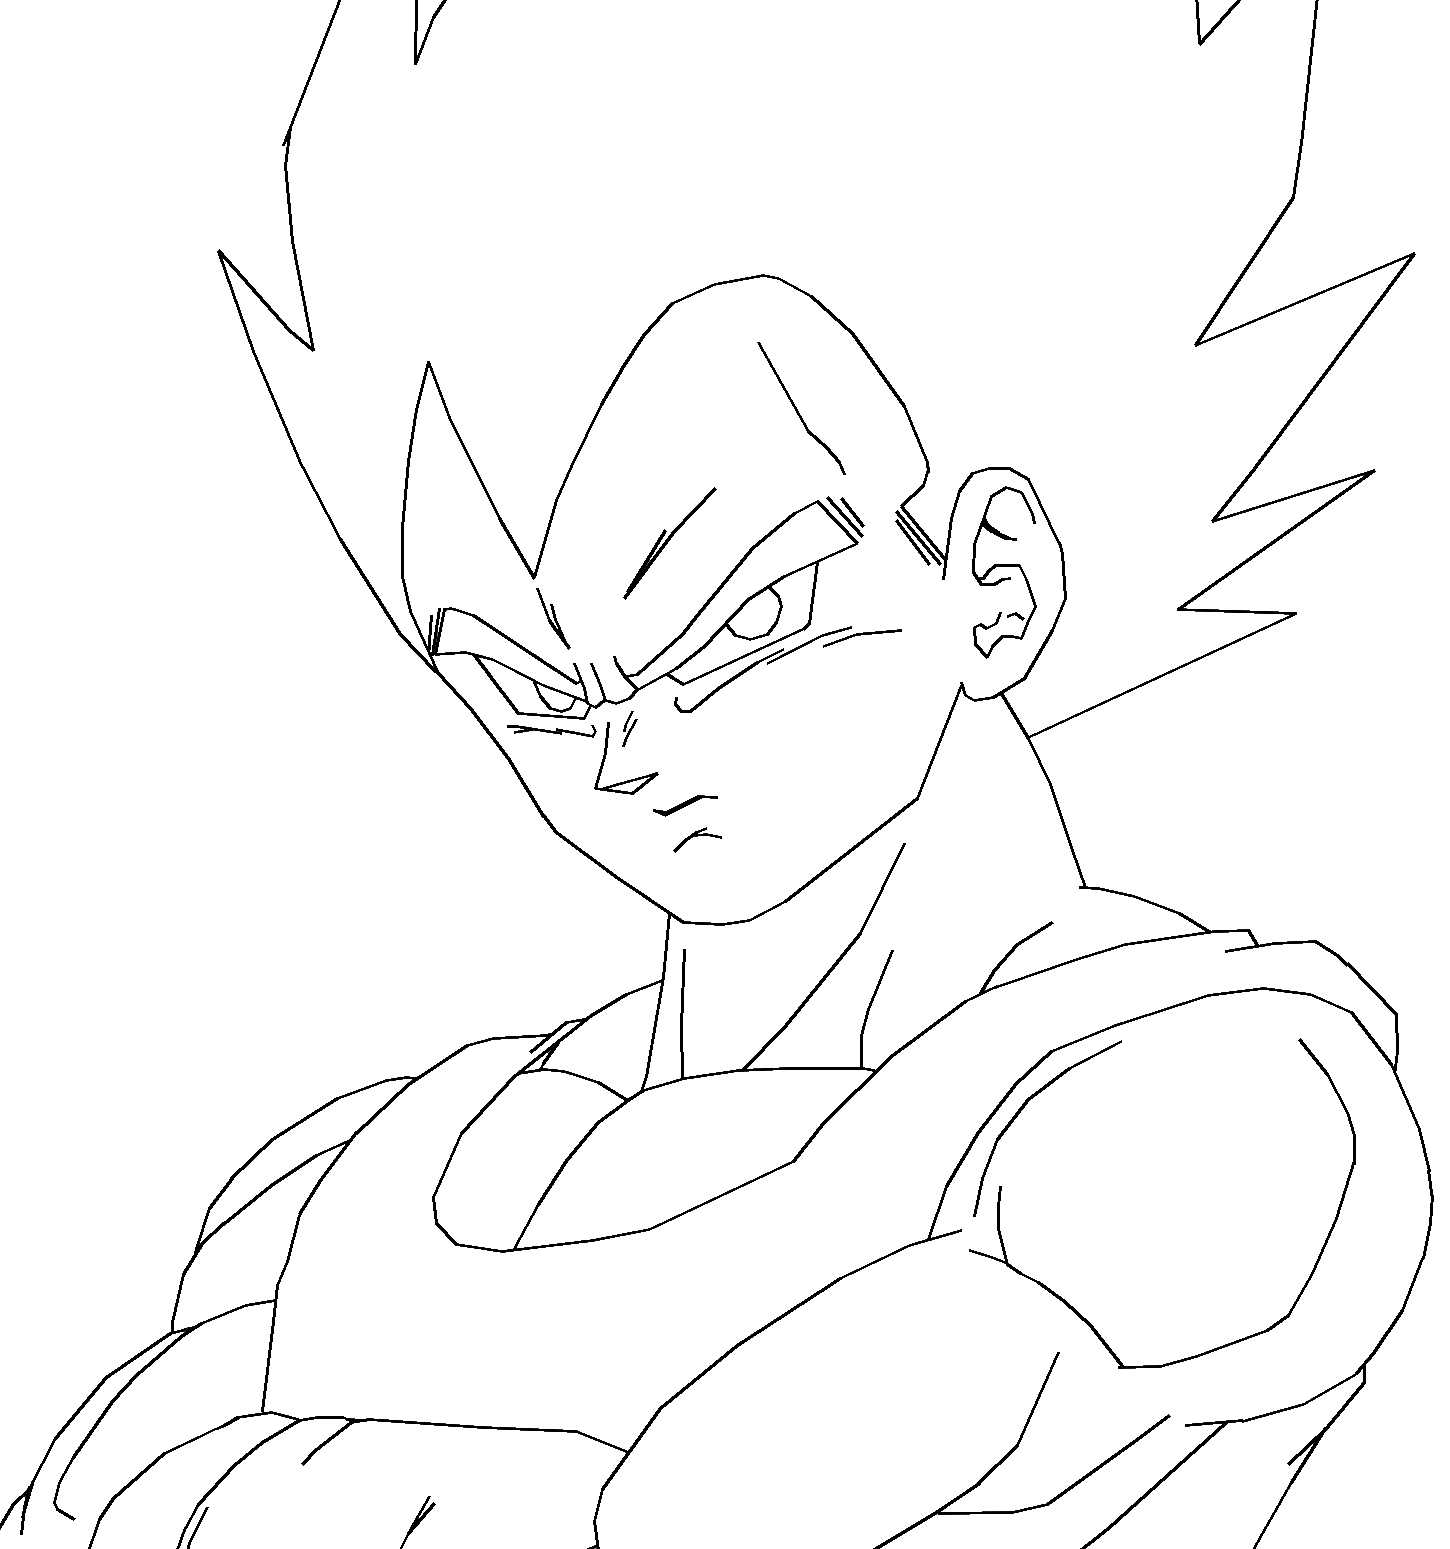 Coloriage de vegeta en couleur - Dessin dragon ball z facile ...